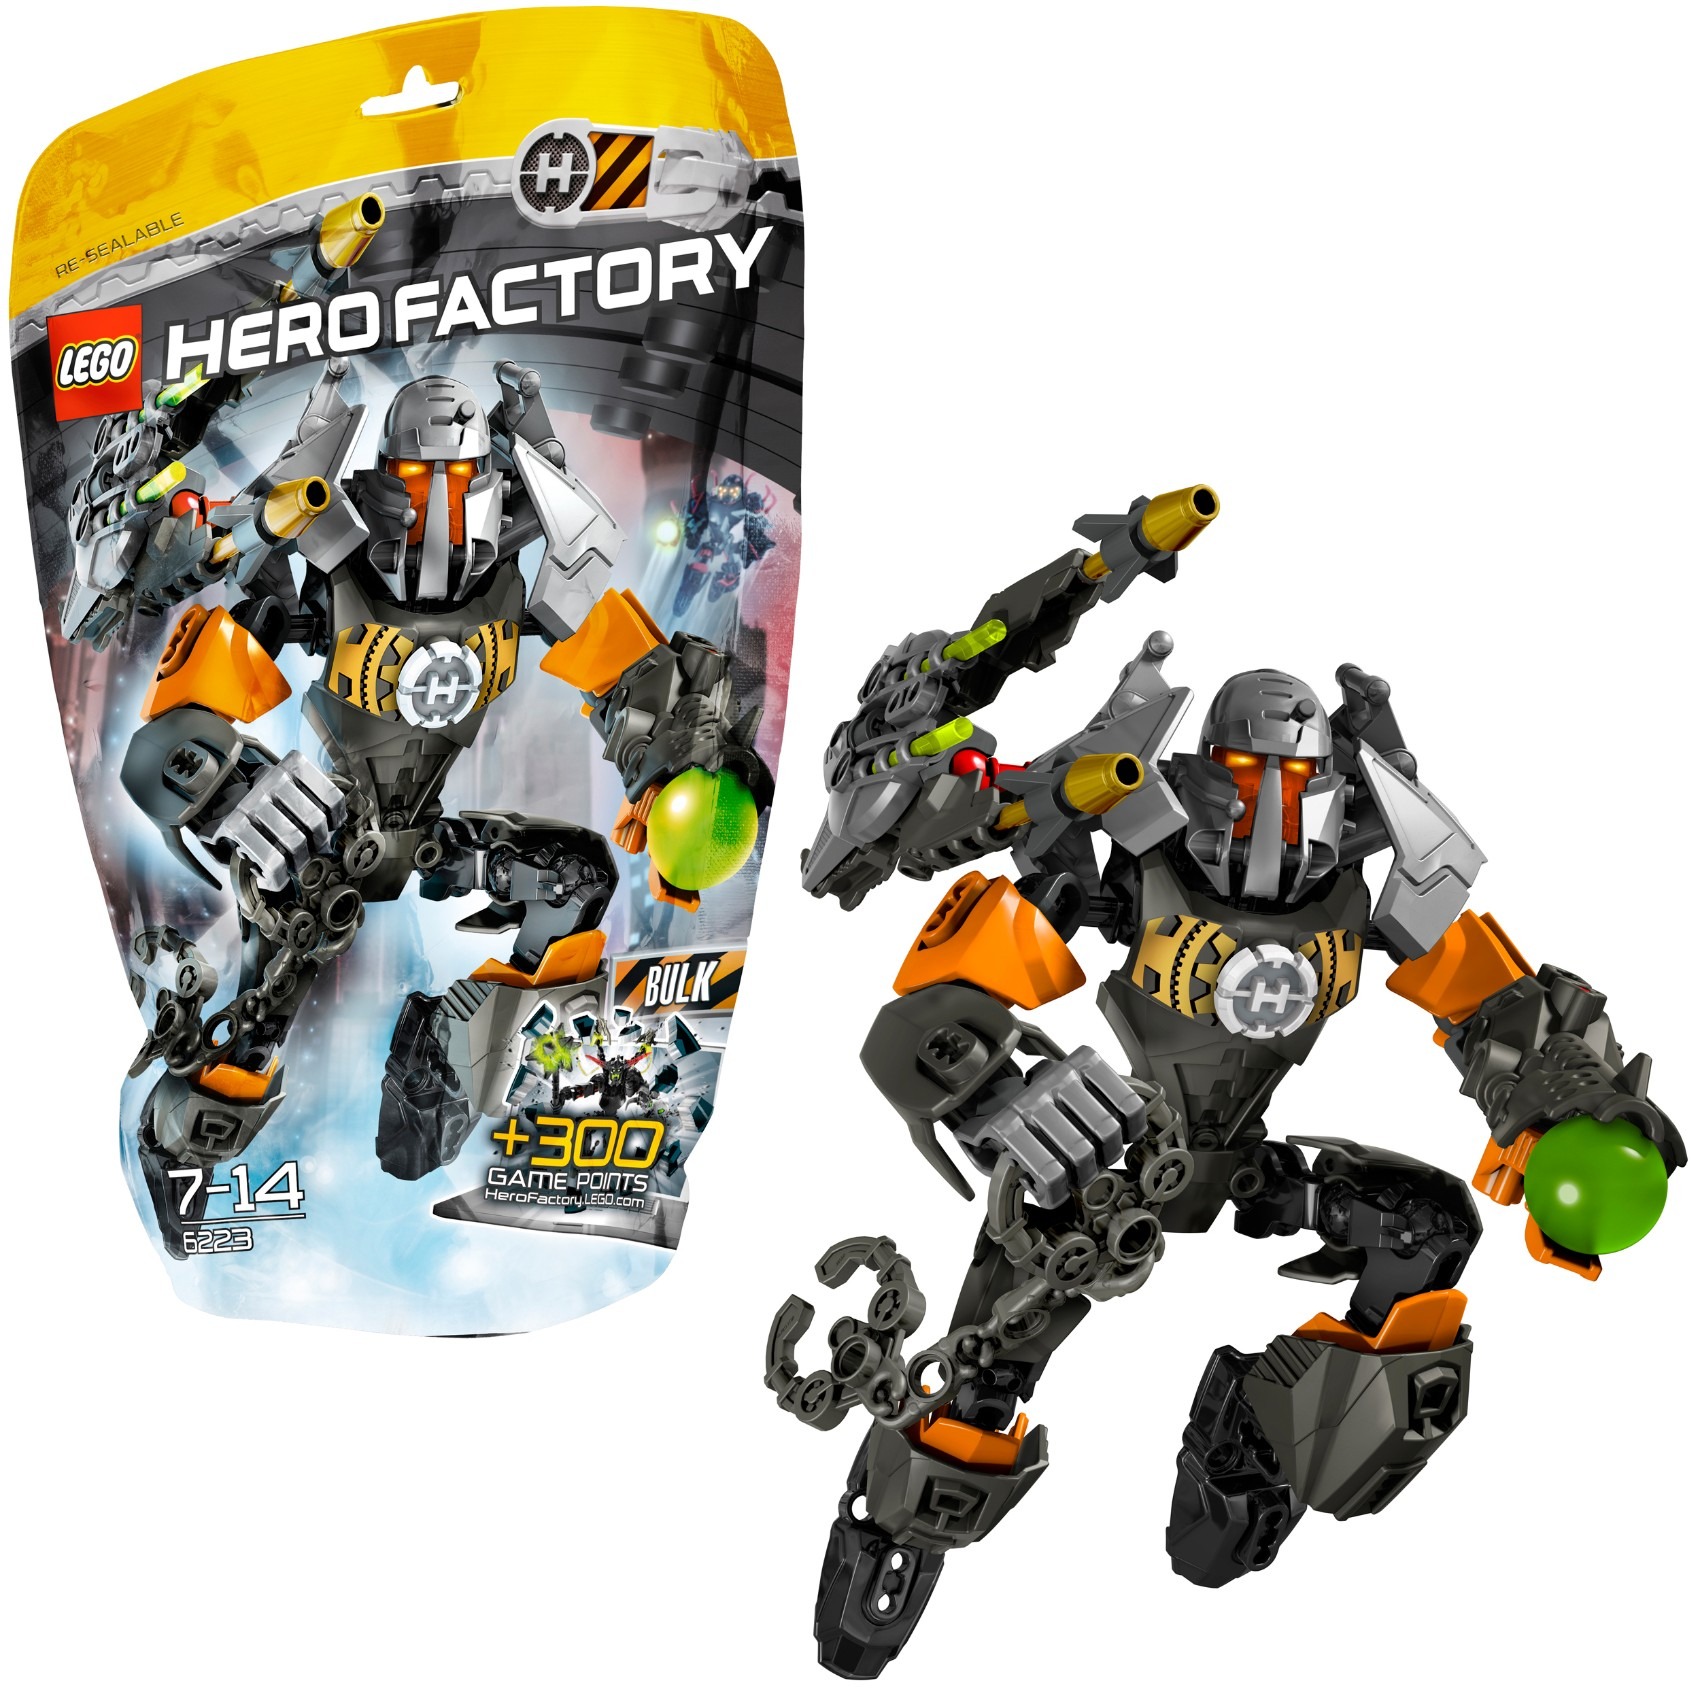 LEGO 6223 Hero Factory